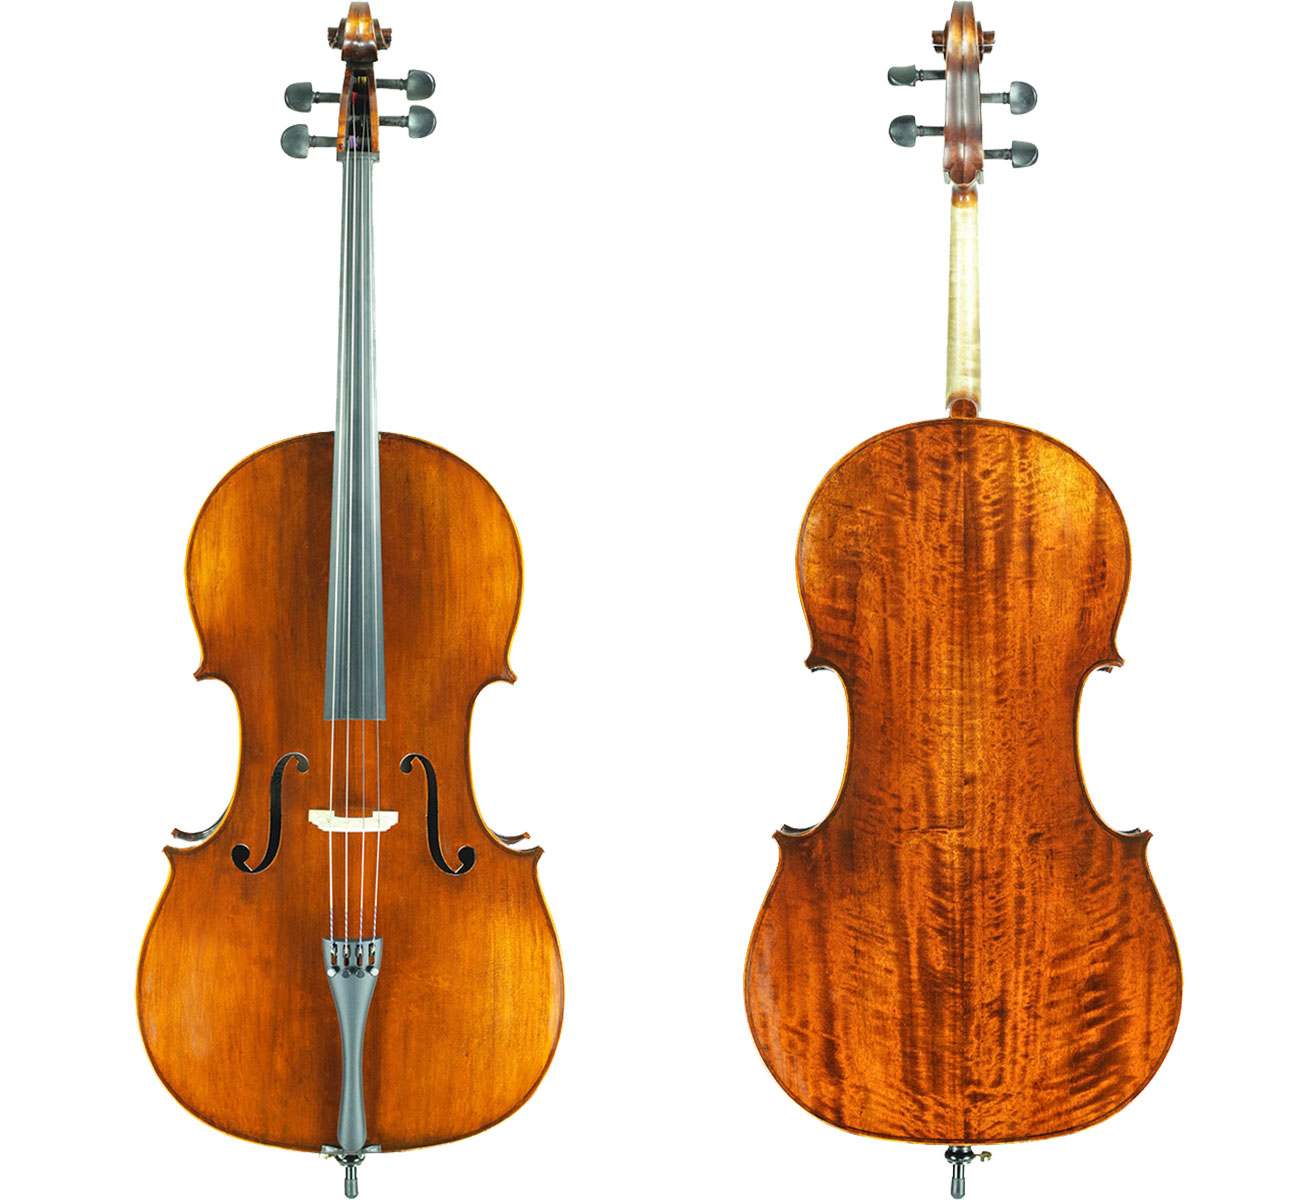 Eastman 305 Cello